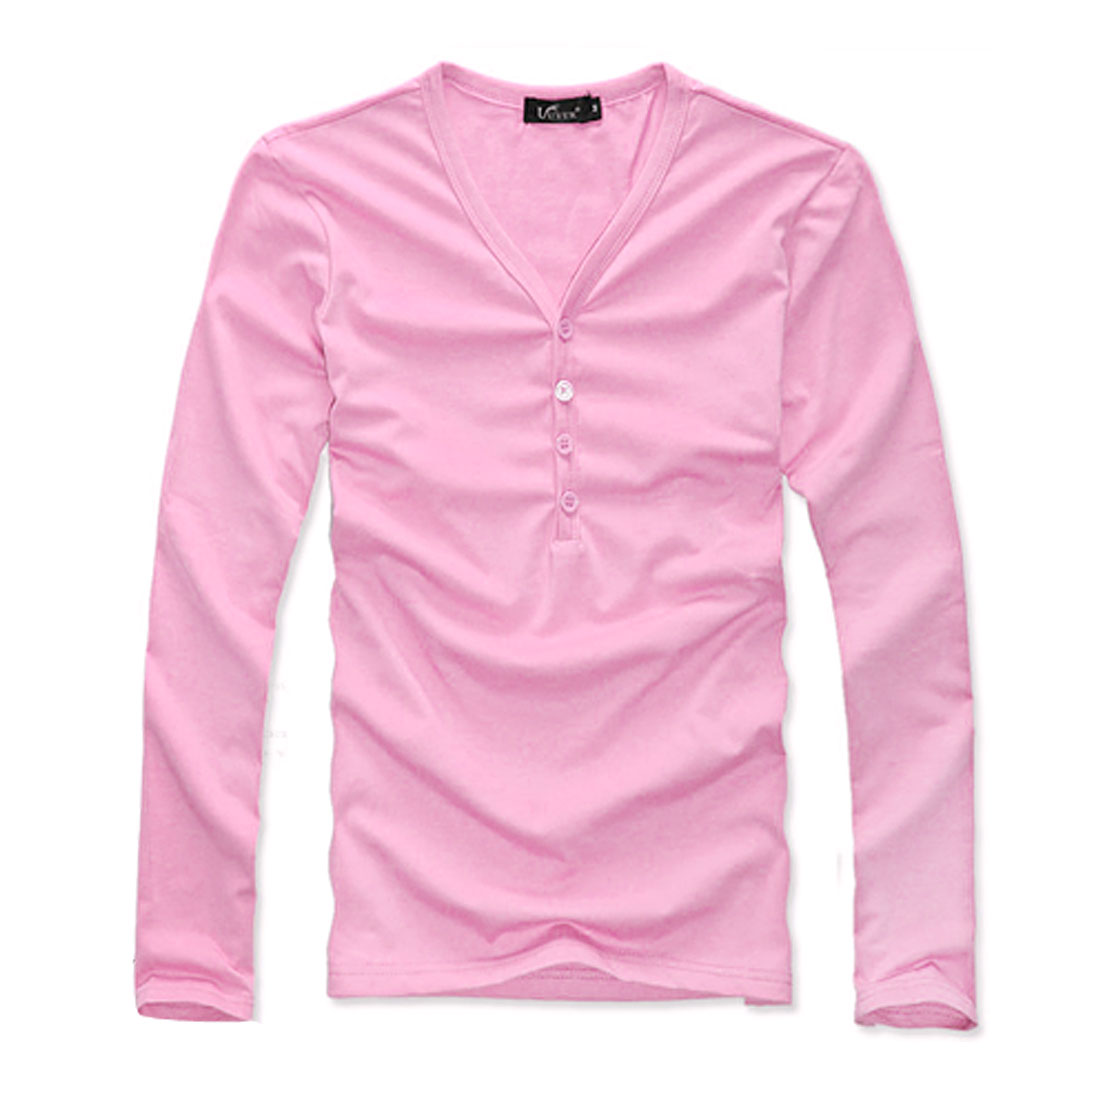 Mens Pink Stylish Simple Design Buttons Top Slim Fit Henley Top Shirt S